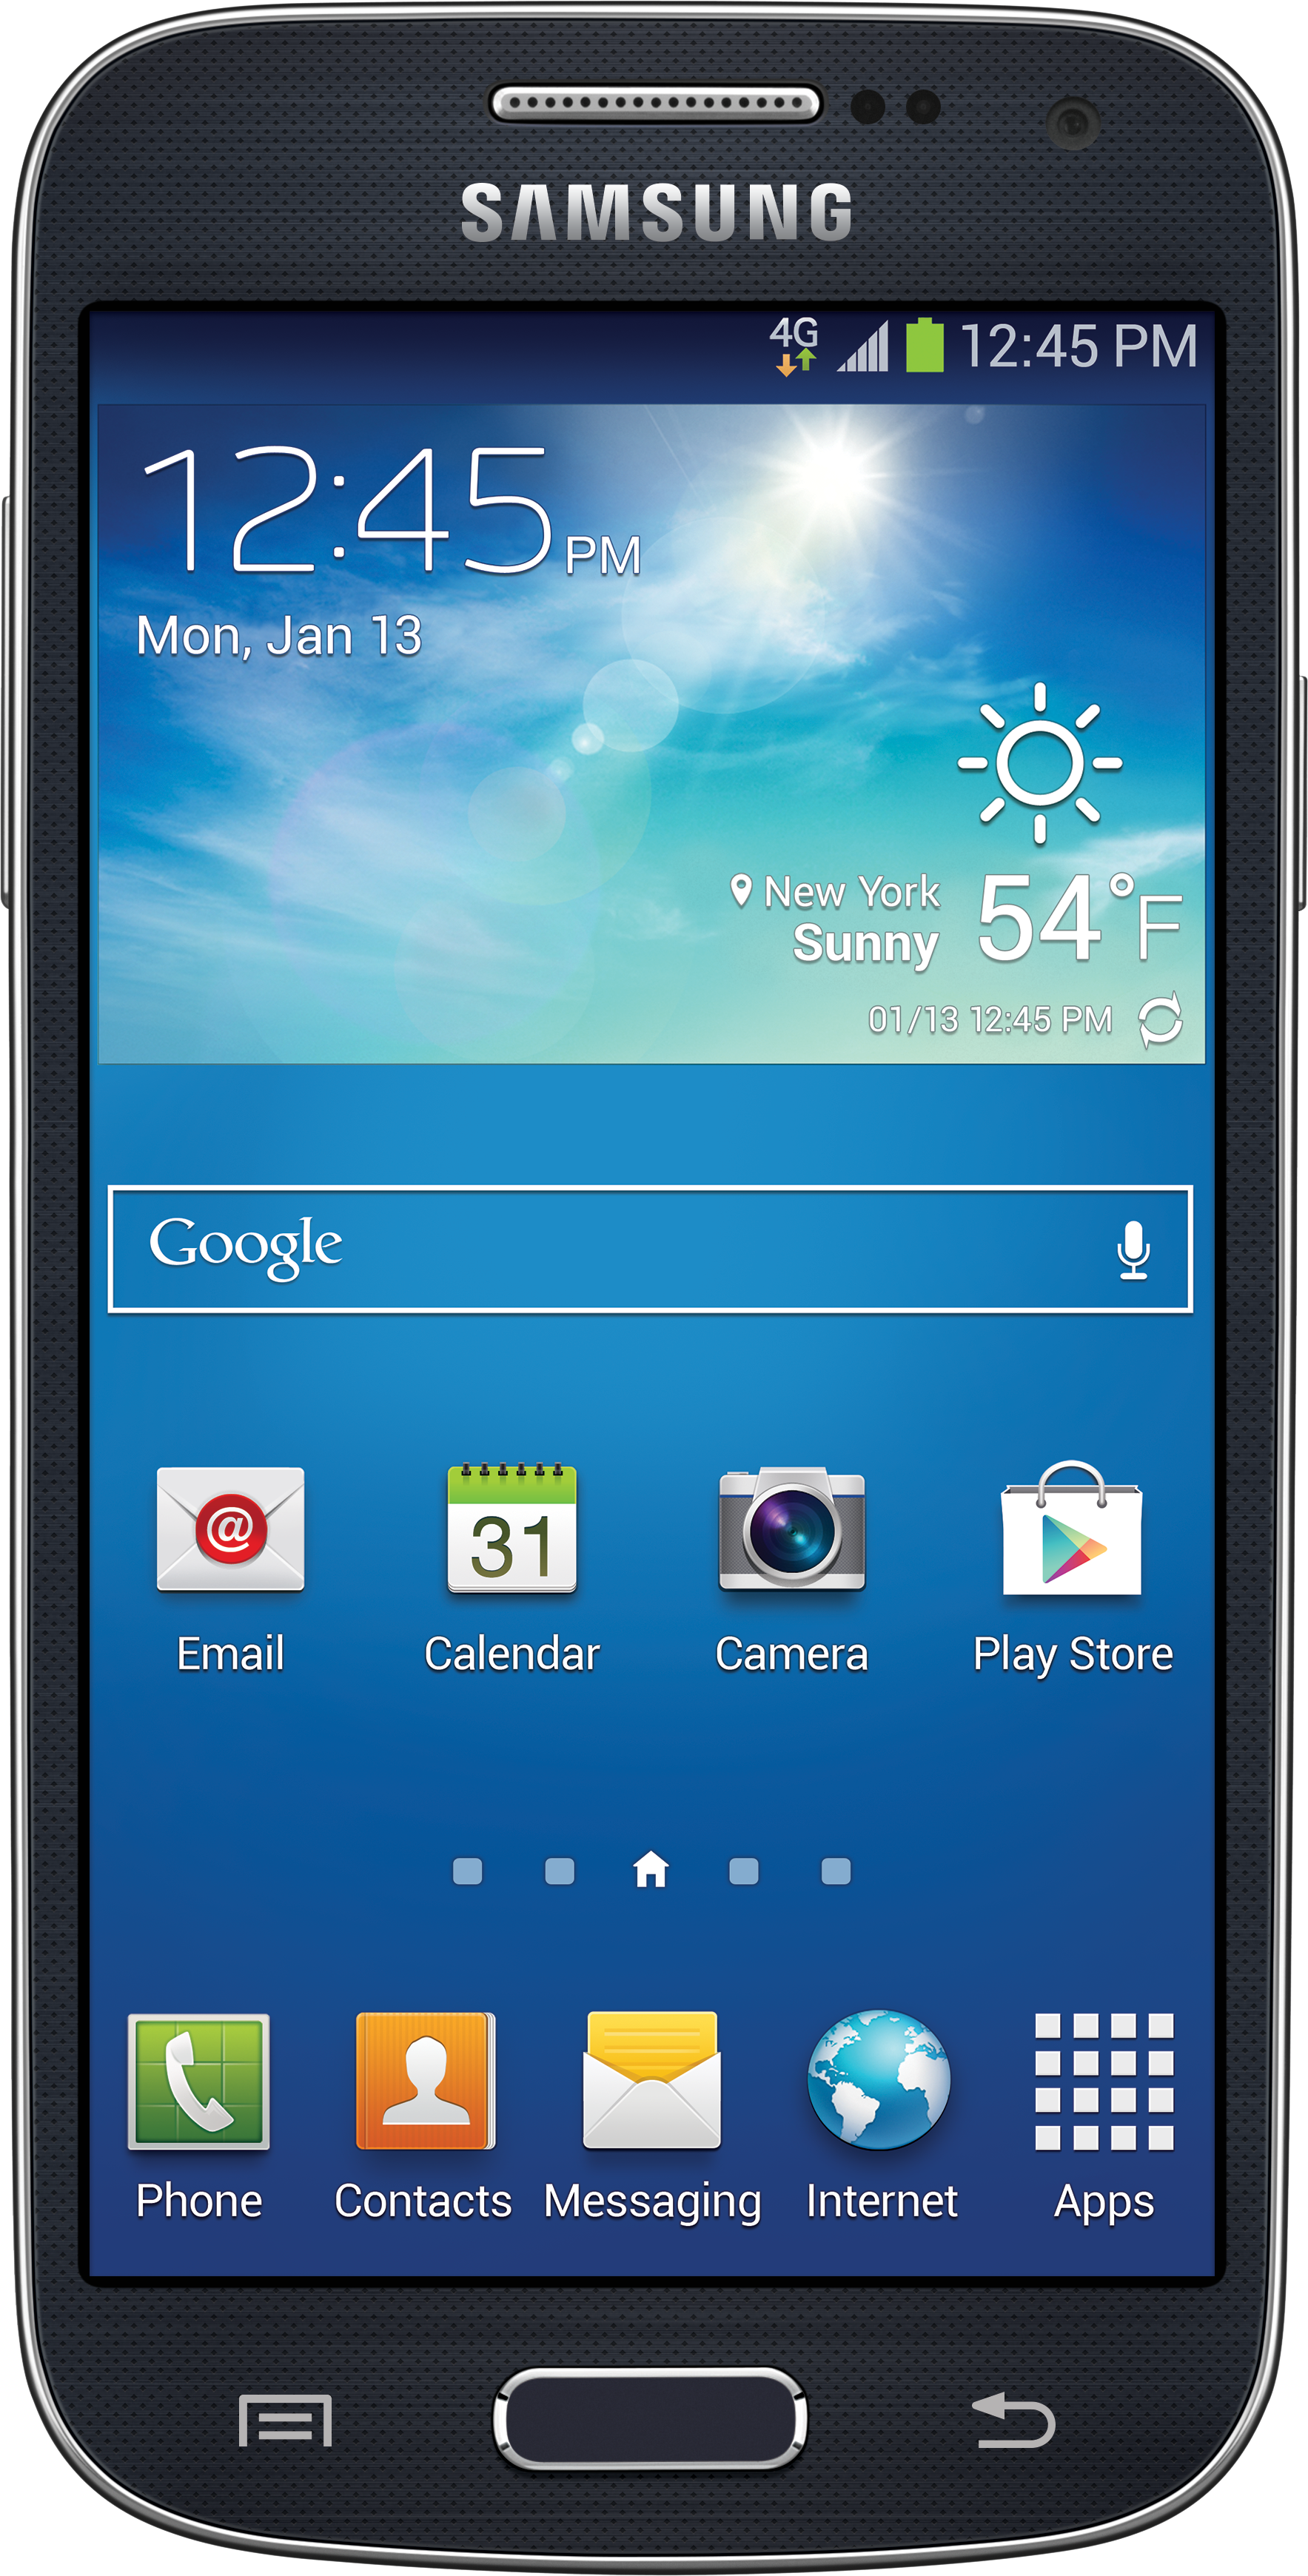 Android Smartphone Png Image Samsung Galaxy S4 Mini Samsung Galaxy S4 Galaxy S4 Mini